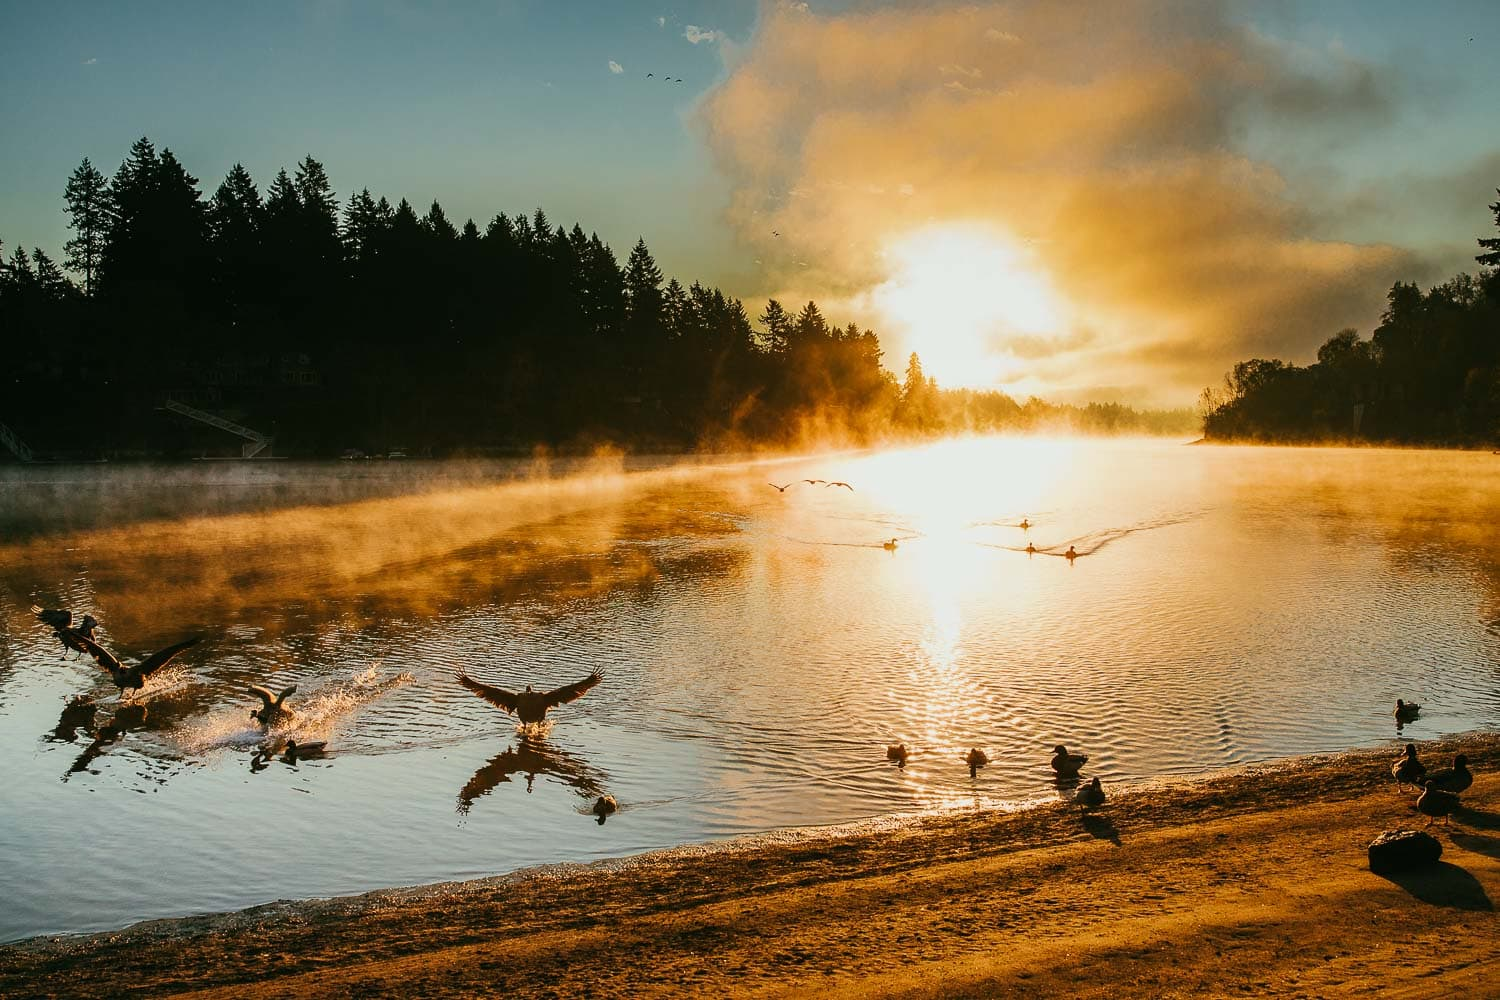 landscape image of the sun rising over a river with ducks